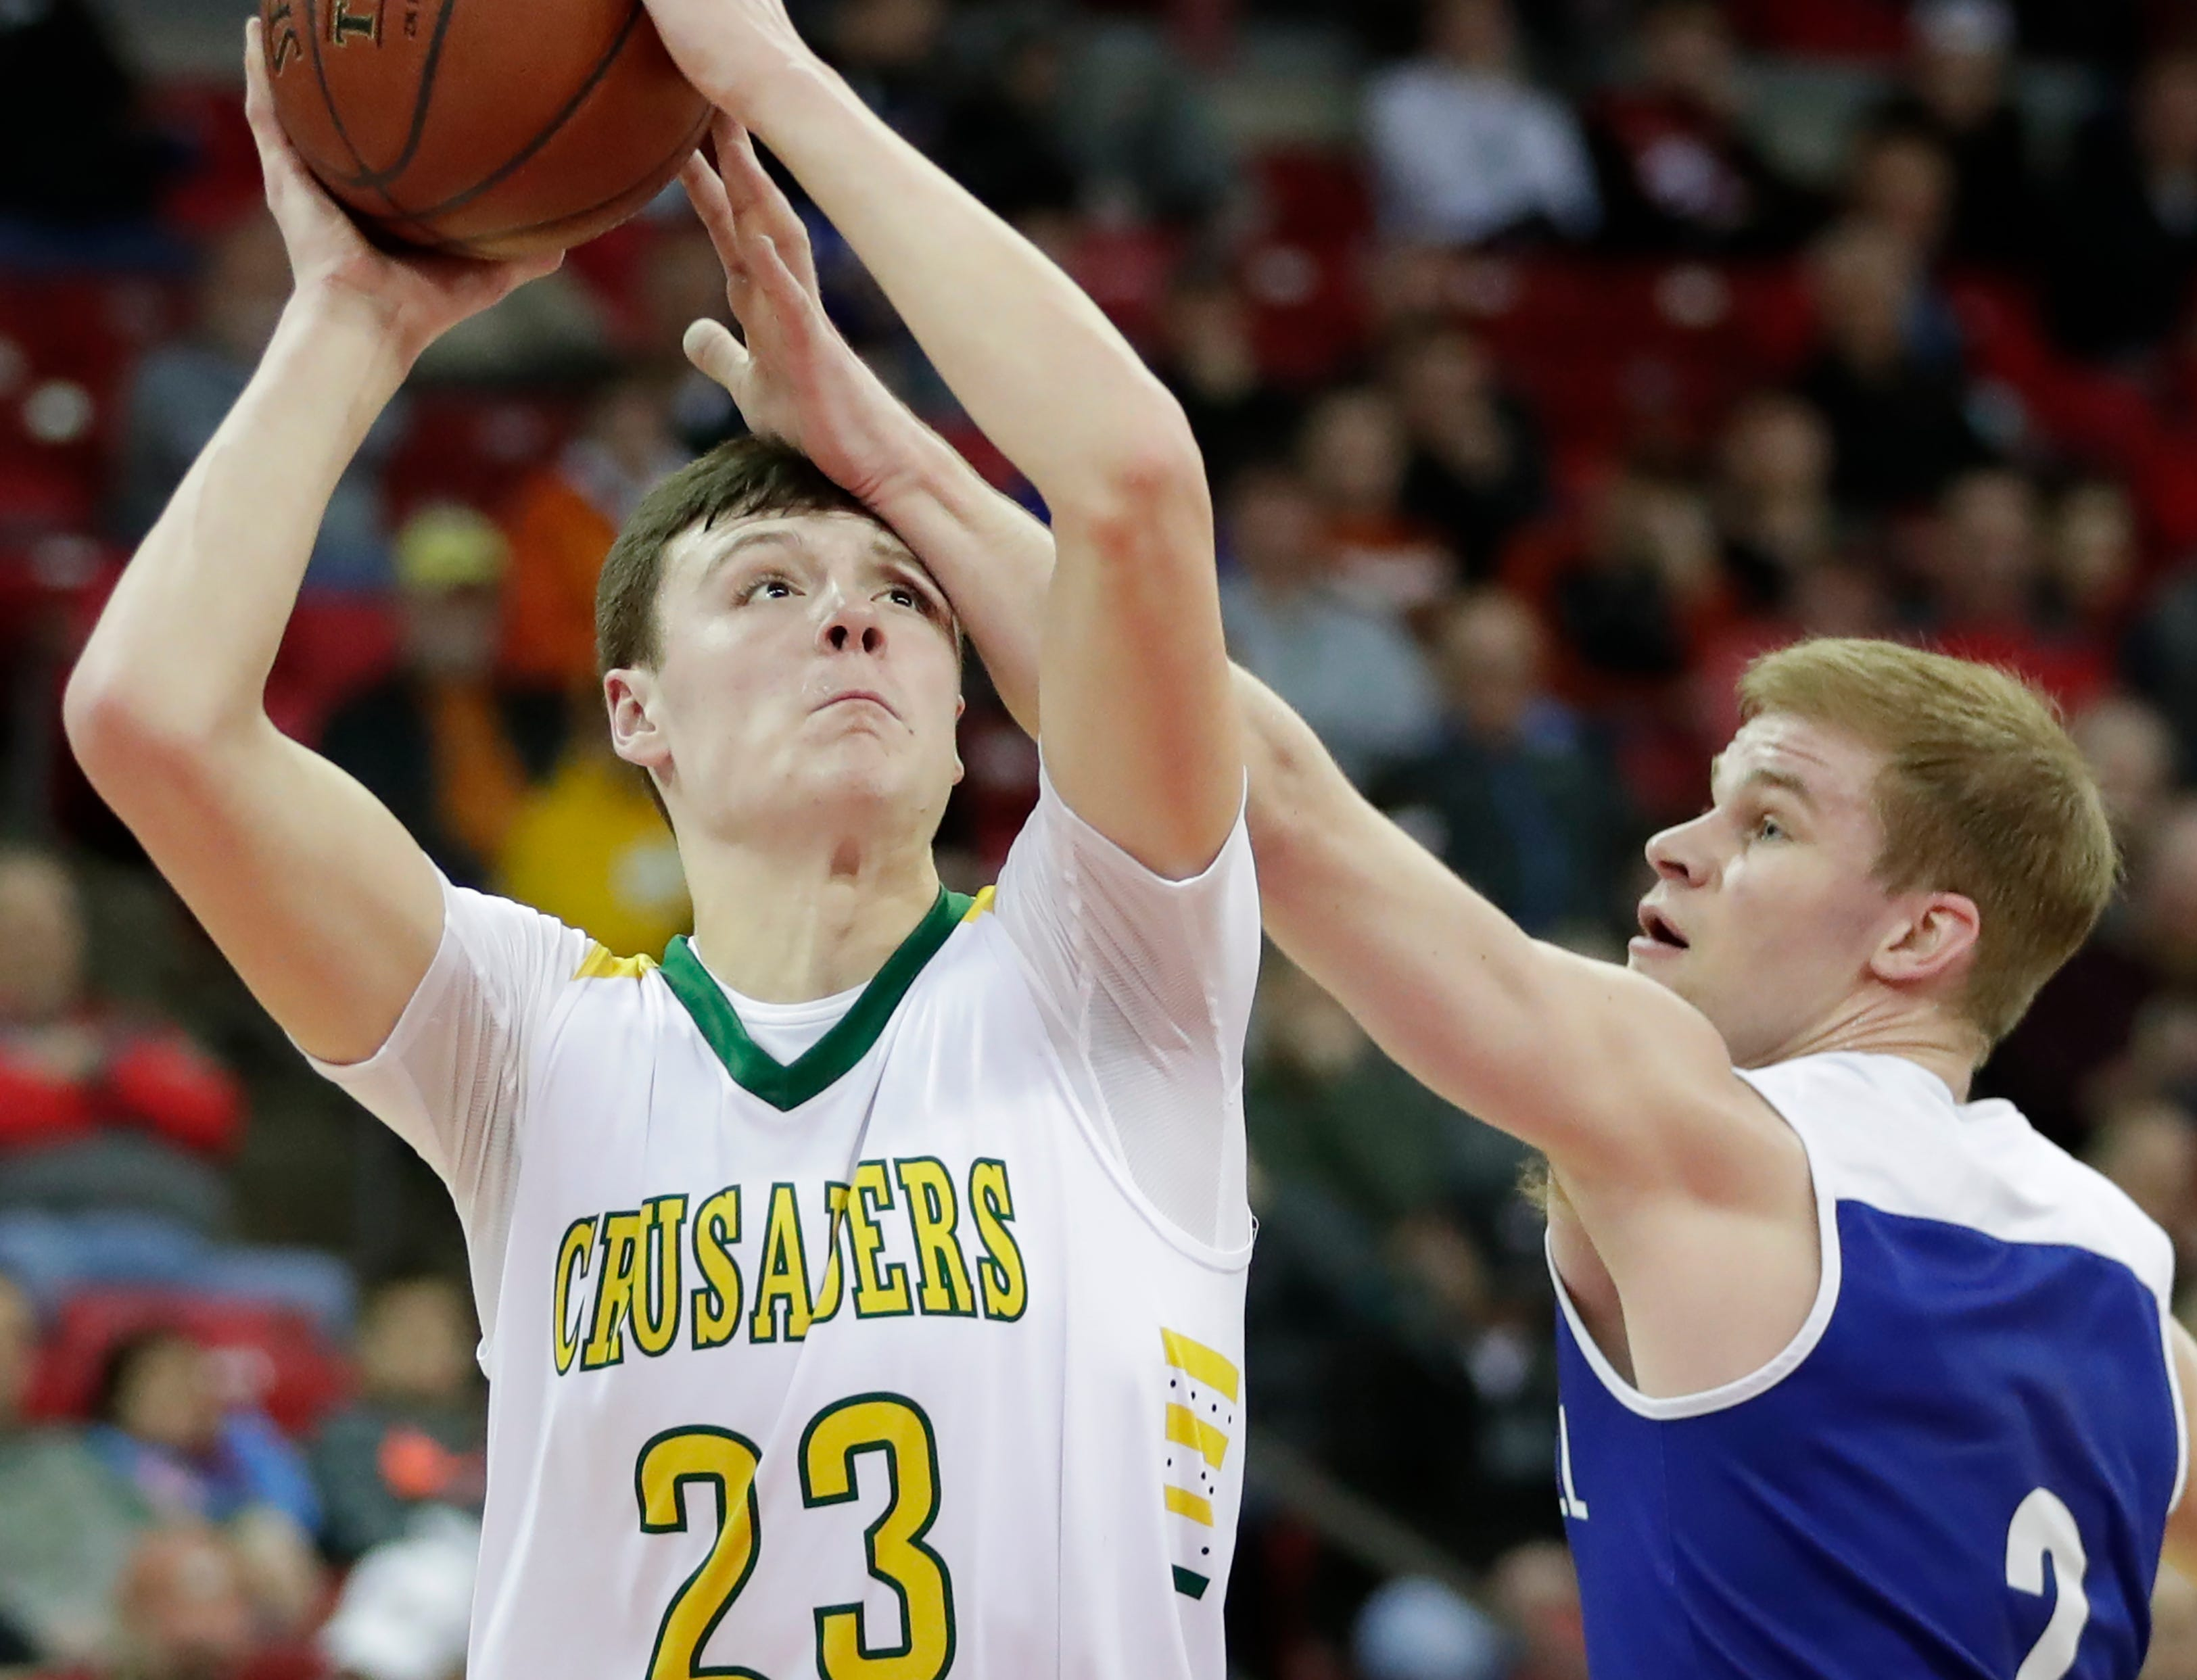 Sheboygan Area Lutheran High School's Jacob Ognacevic (23) looks to shoots against McDonell Central Catholic High School's Cory Hoglund (2) during their WIAA Division 5 boys basketball state semifinal at the Kohl Center Friday, March 15, 2019, in Madison, Wis.